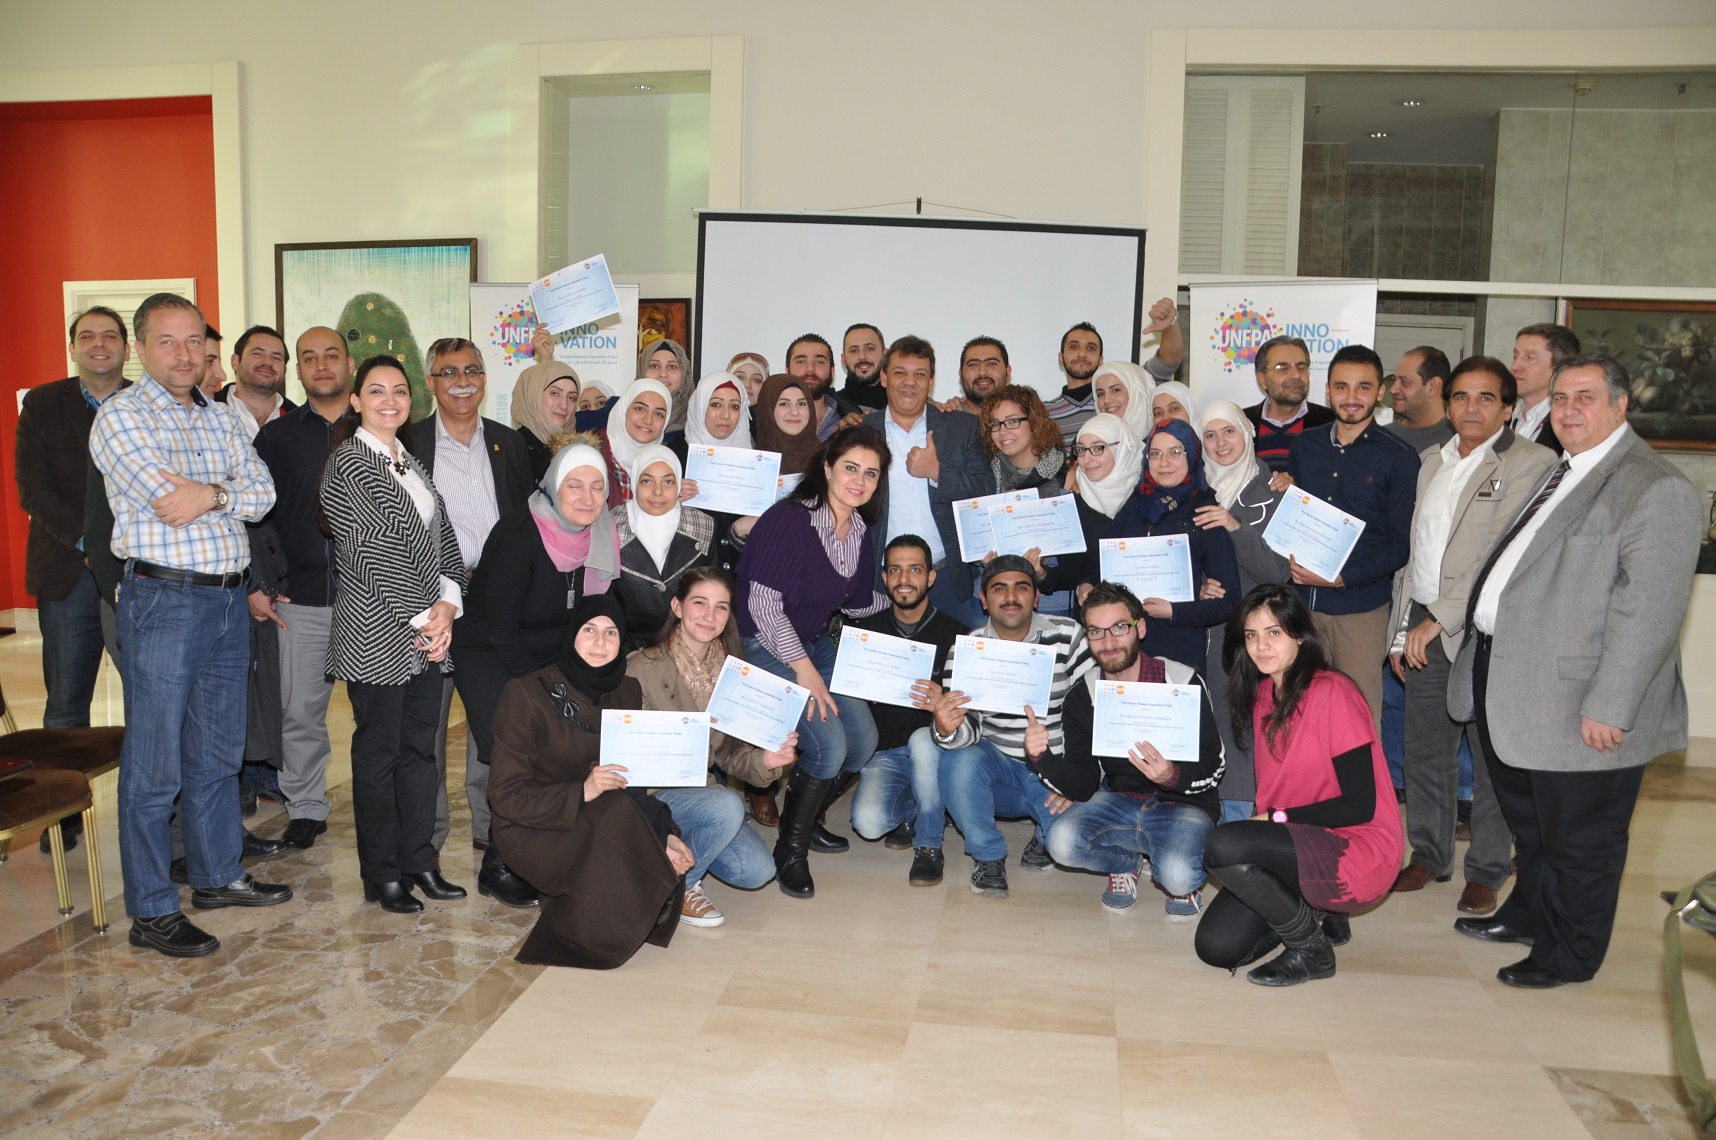 Of the 28 students on the UNFPA's startup training course, 20 were women. (UNFPA Syria)